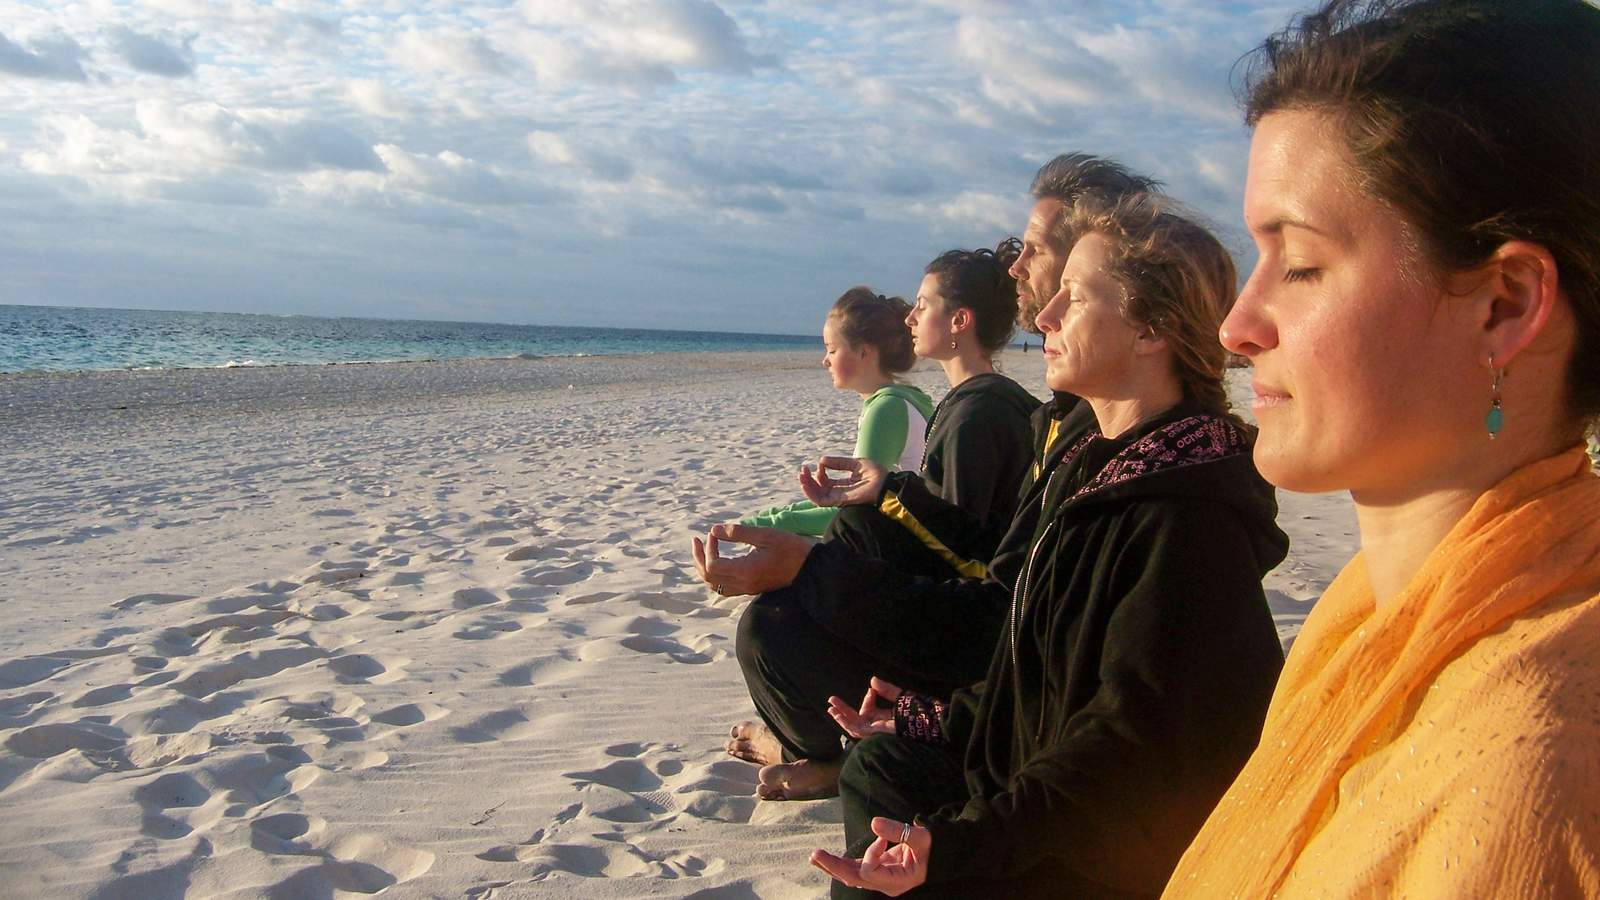 A line of practitioners meditating on a beach in Mexico